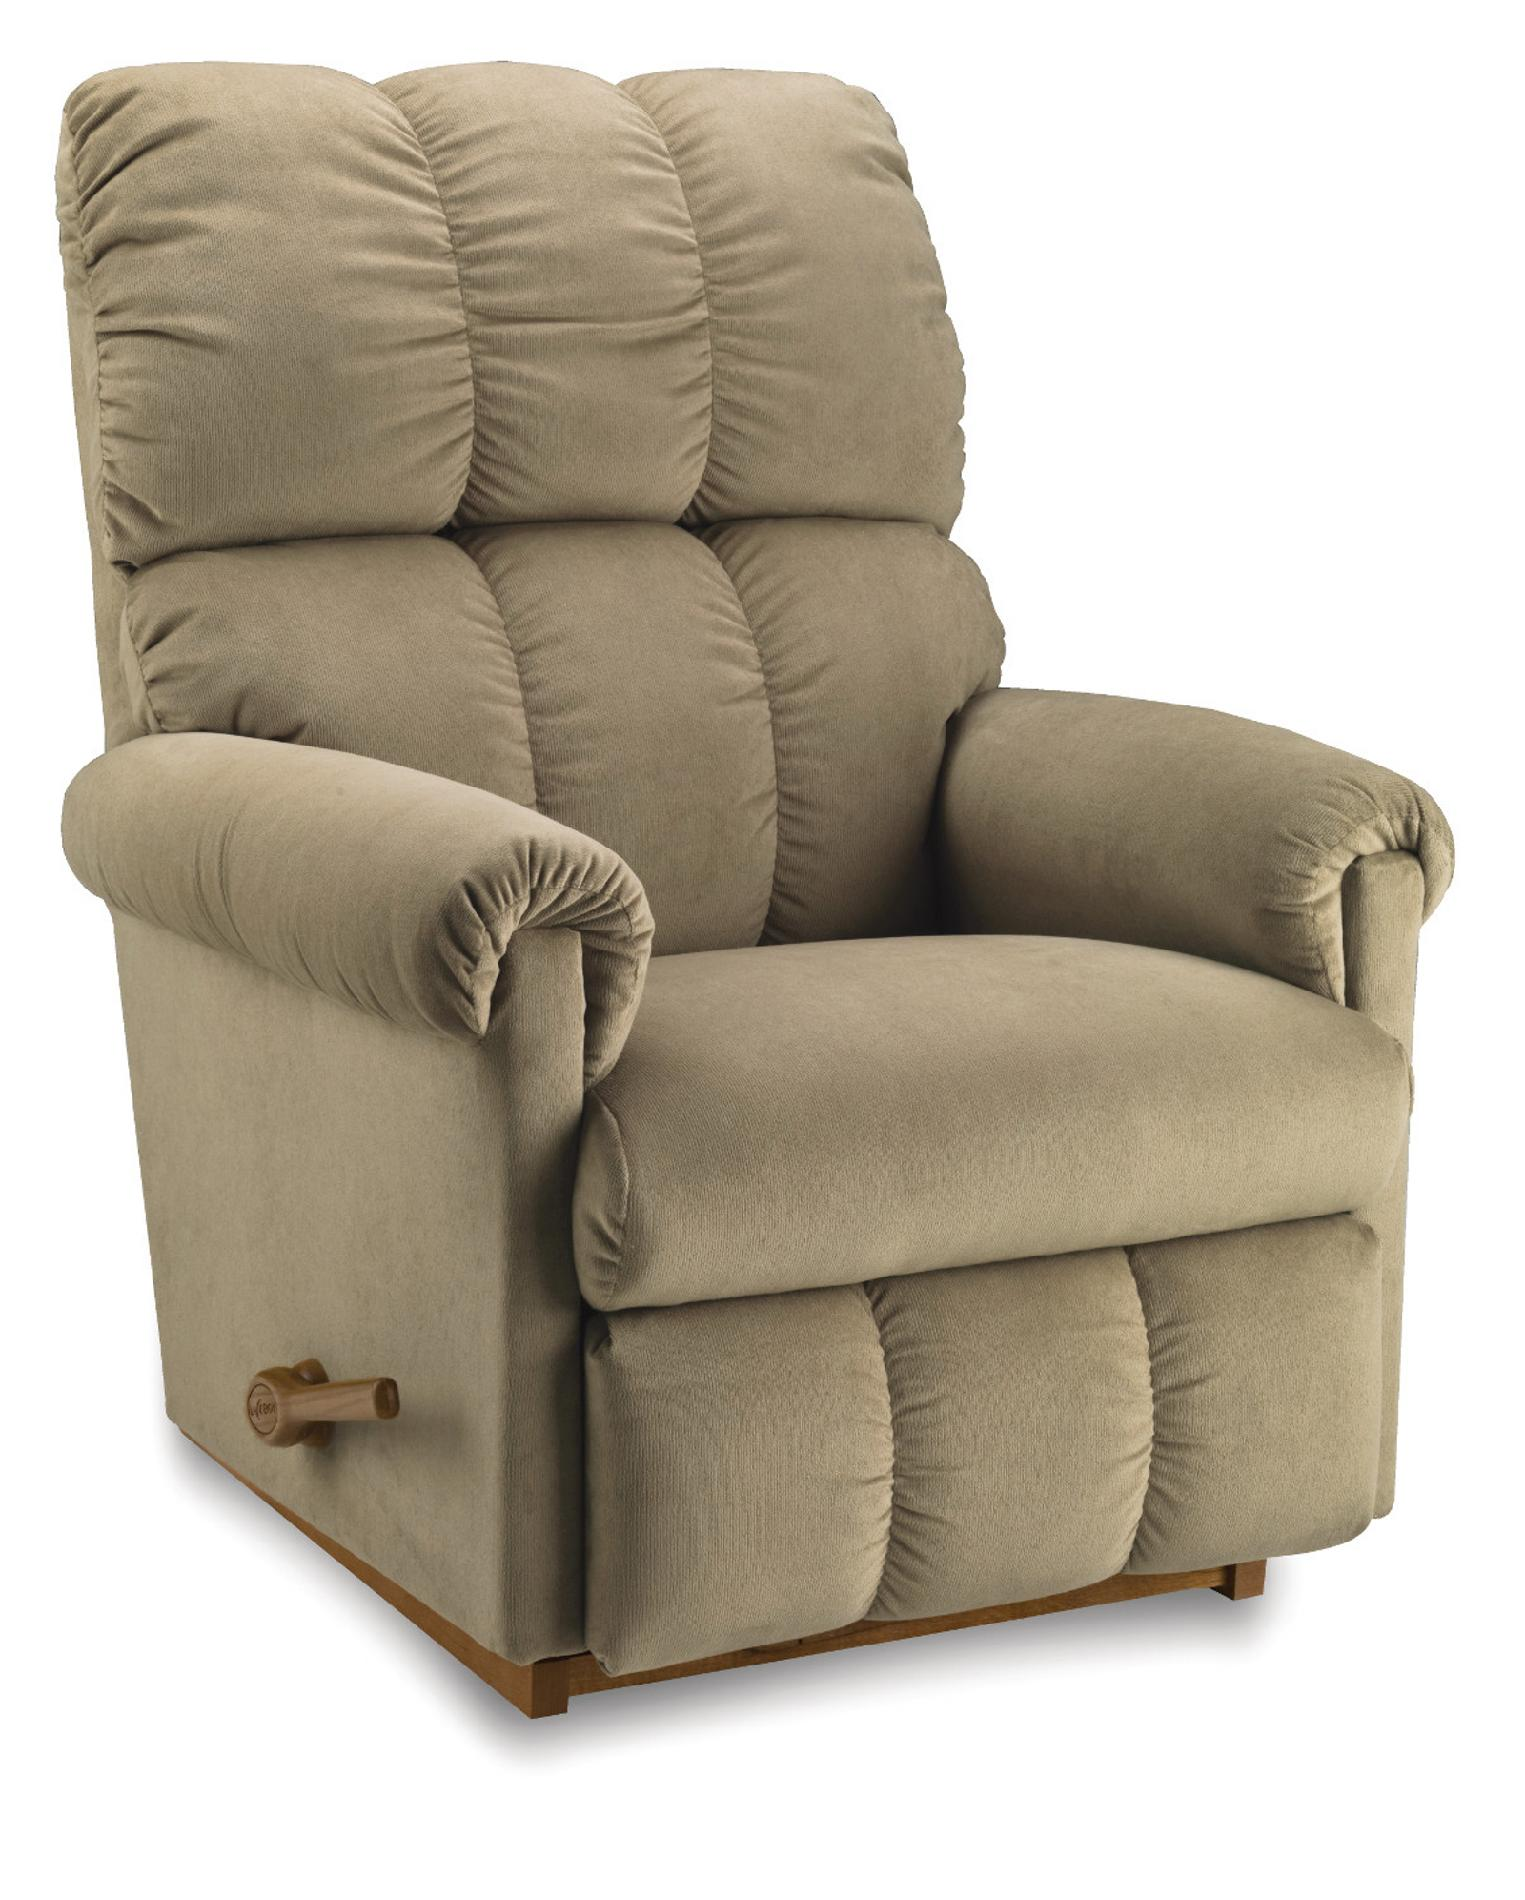 La-Z-Boy Aspen Reclina-Rocker